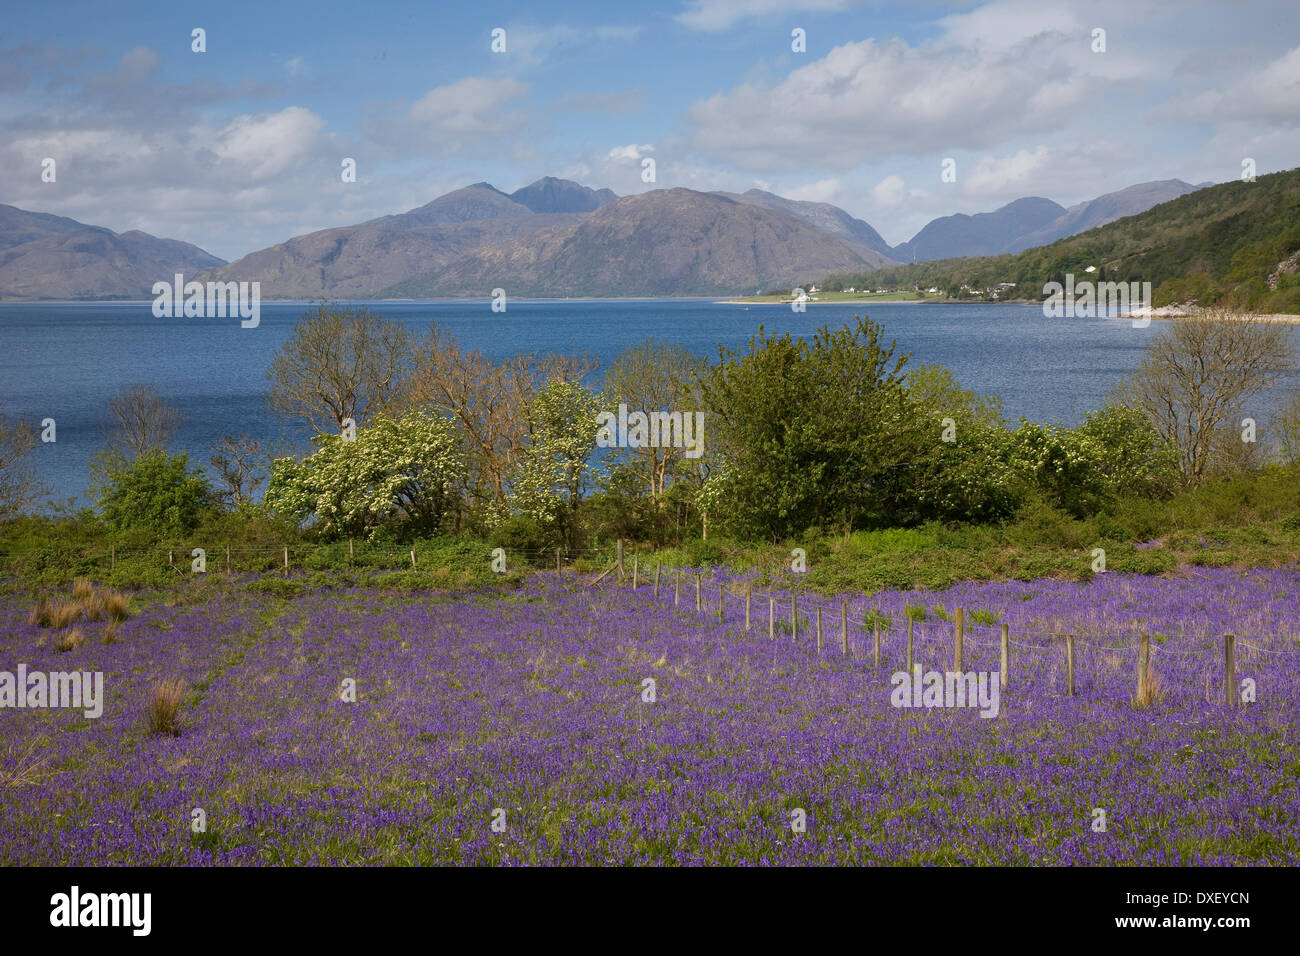 The Morvern Hills from across a filed full of Bluebells, North Ballachulish, West Highlands. - Stock Image